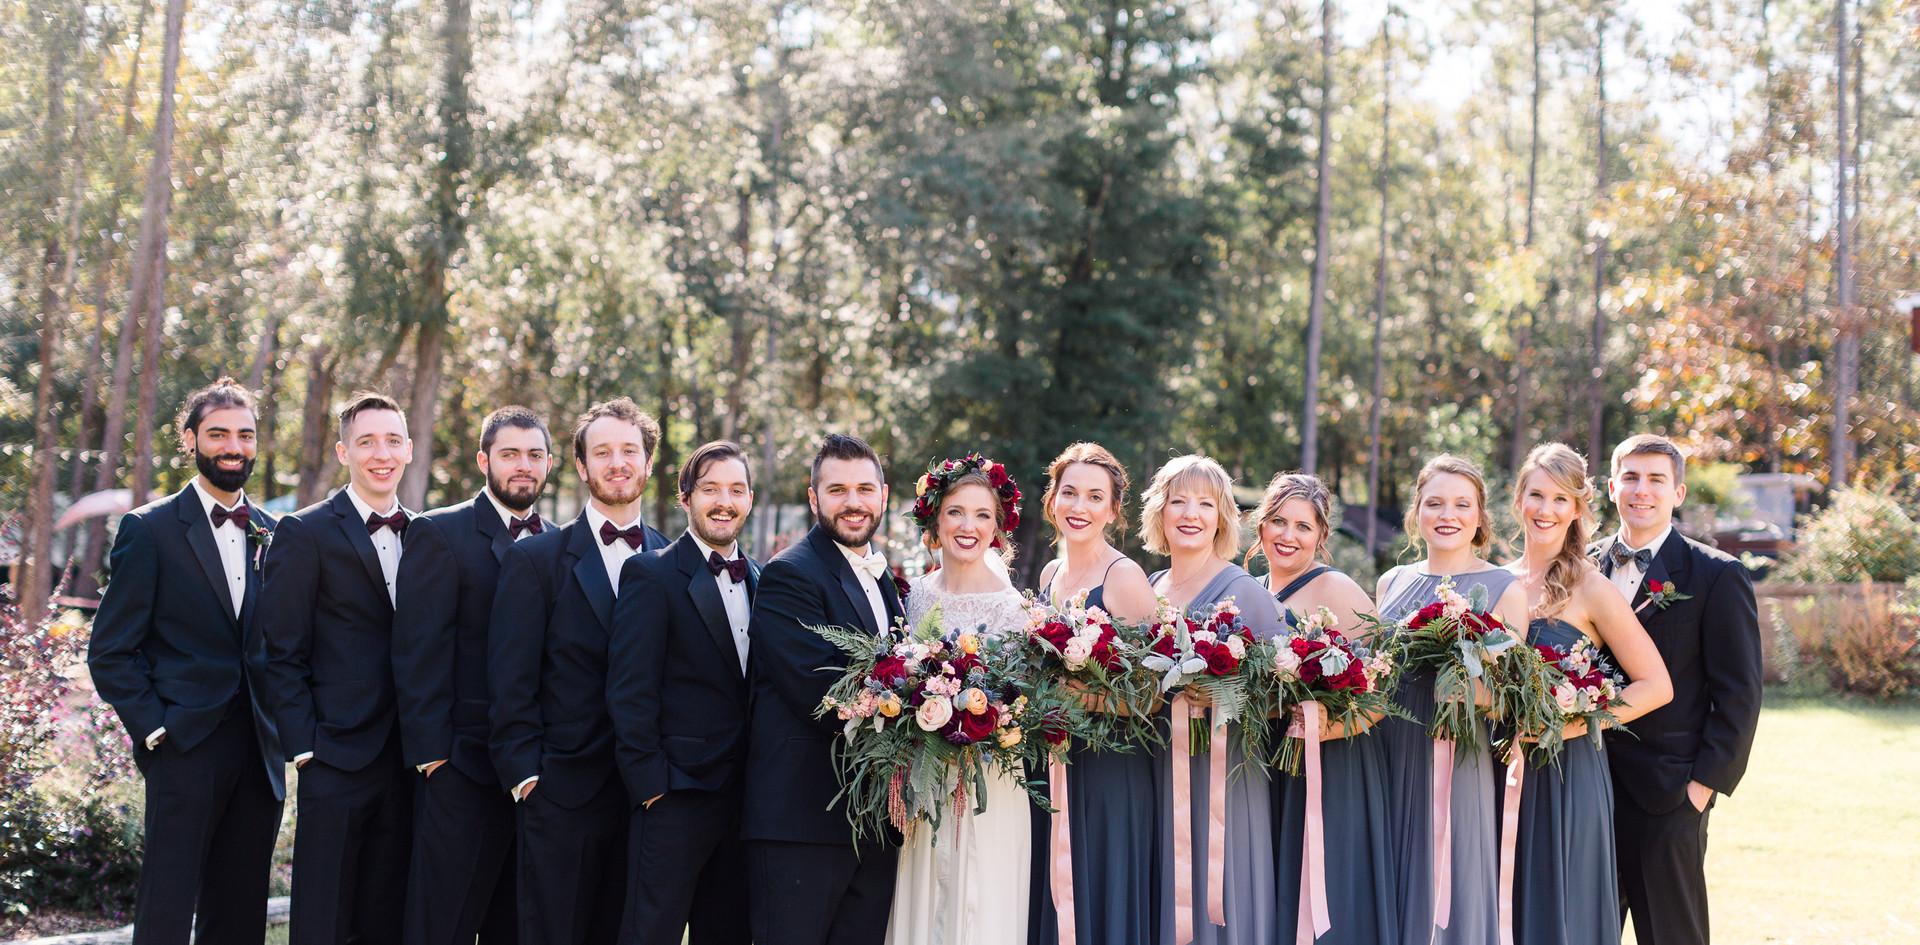 AisPortraits-Thomas-Wedding-Bridal-Party